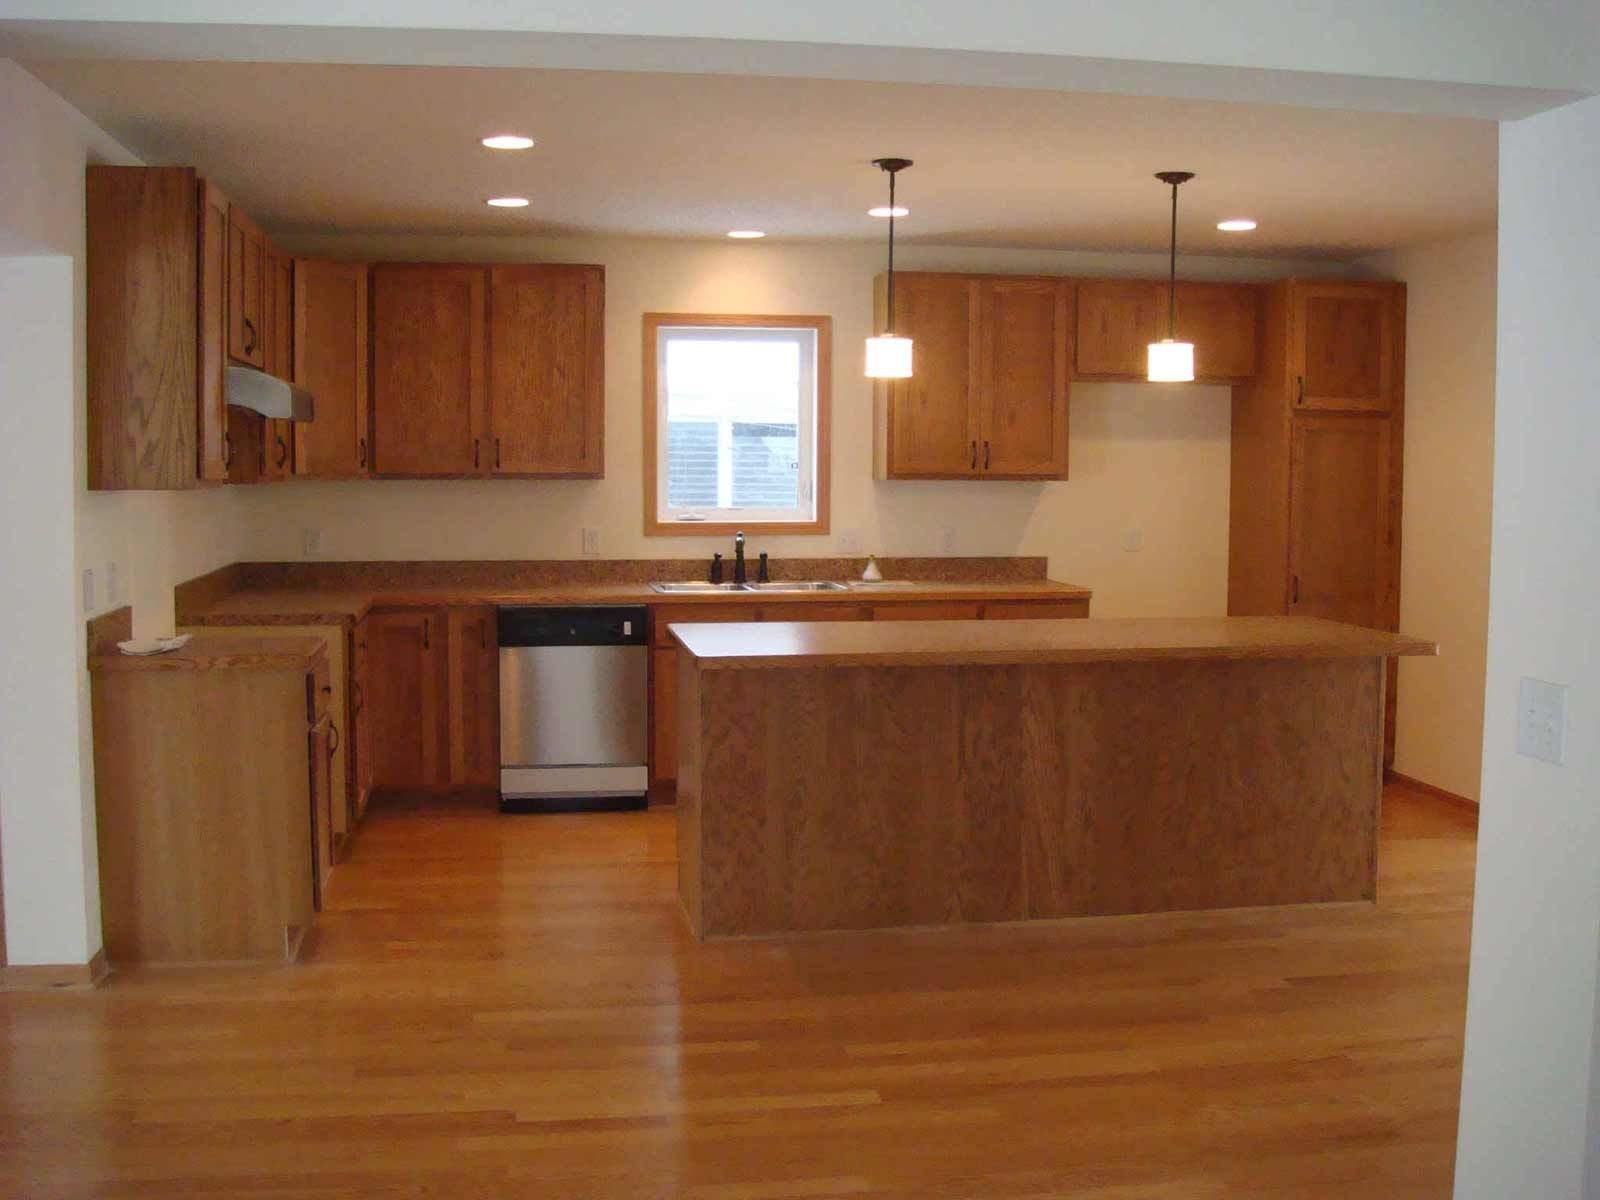 kitchen floor design pictures hardwood flooring for kitchen floors - Laminate Kitchen Flooring